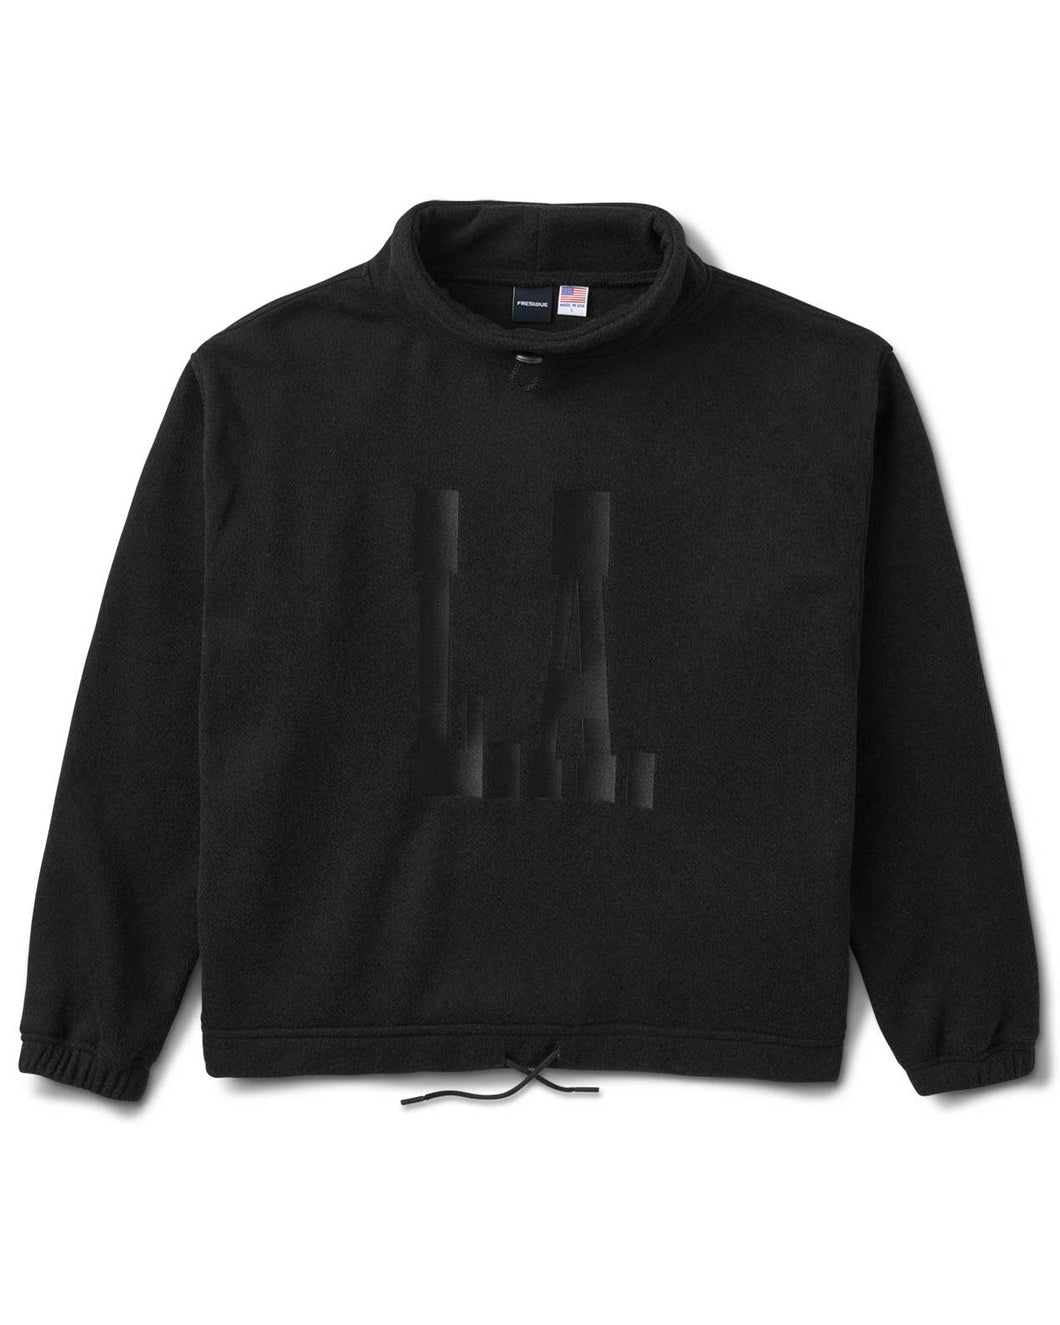 Highland Pullover Black